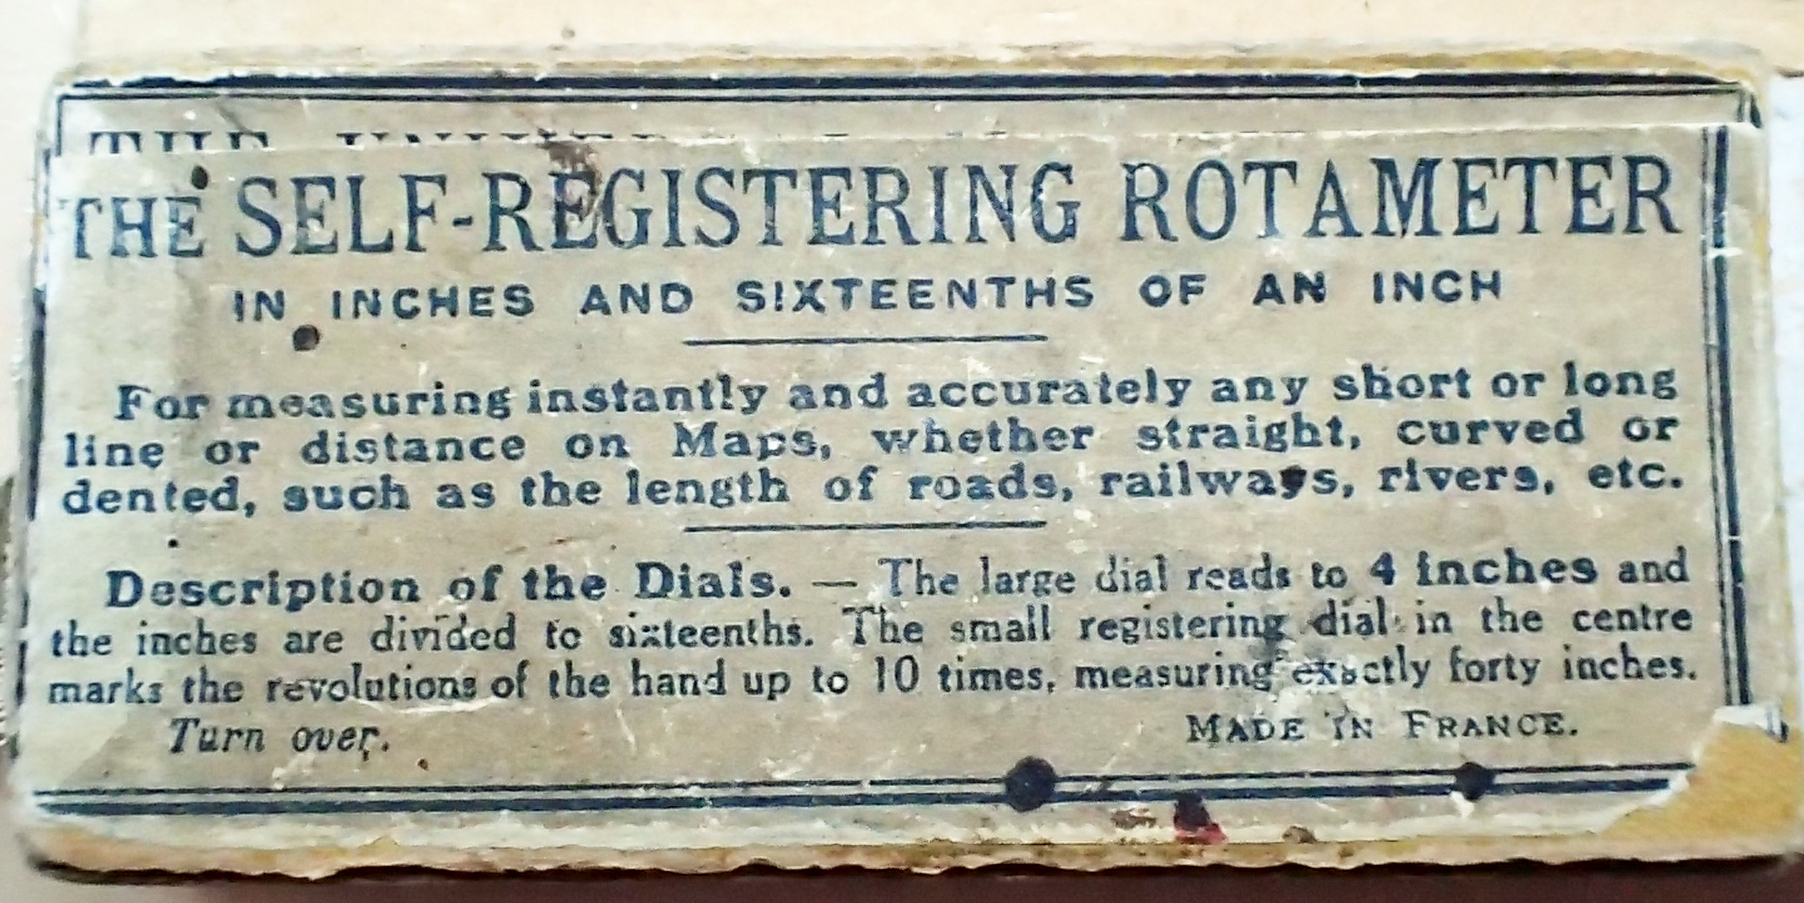 Box for 'Self-Registering Rotameter', giving detail on how to use